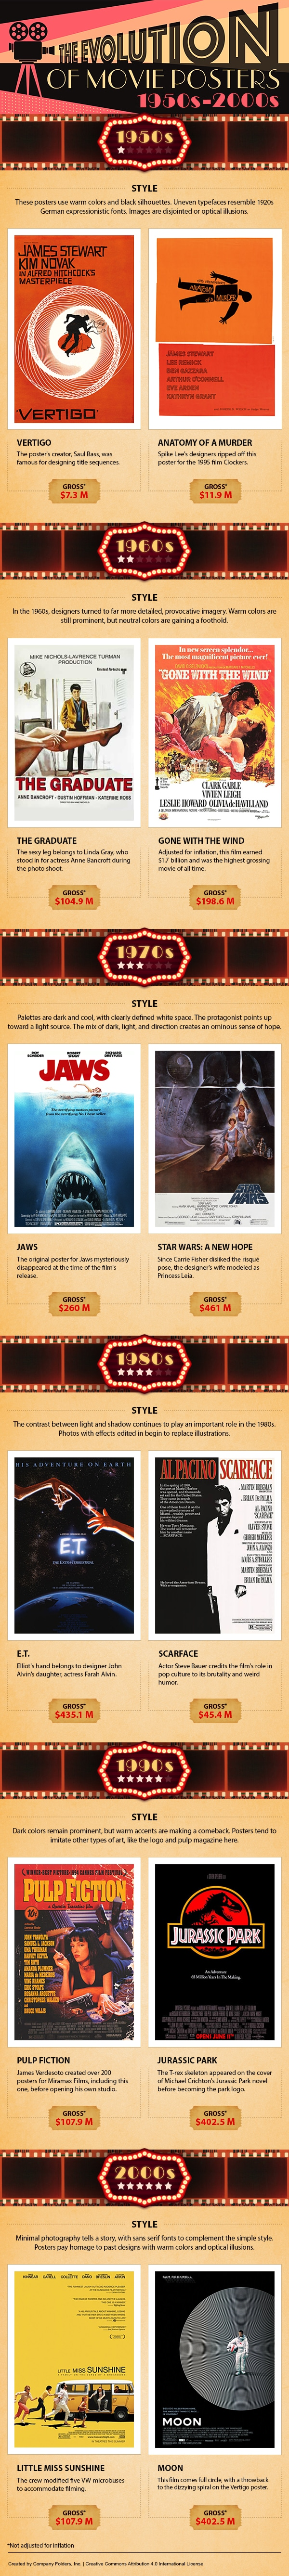 7 Decades Of Movie Poster Artistry – Amazing Inspiration [Infographic]